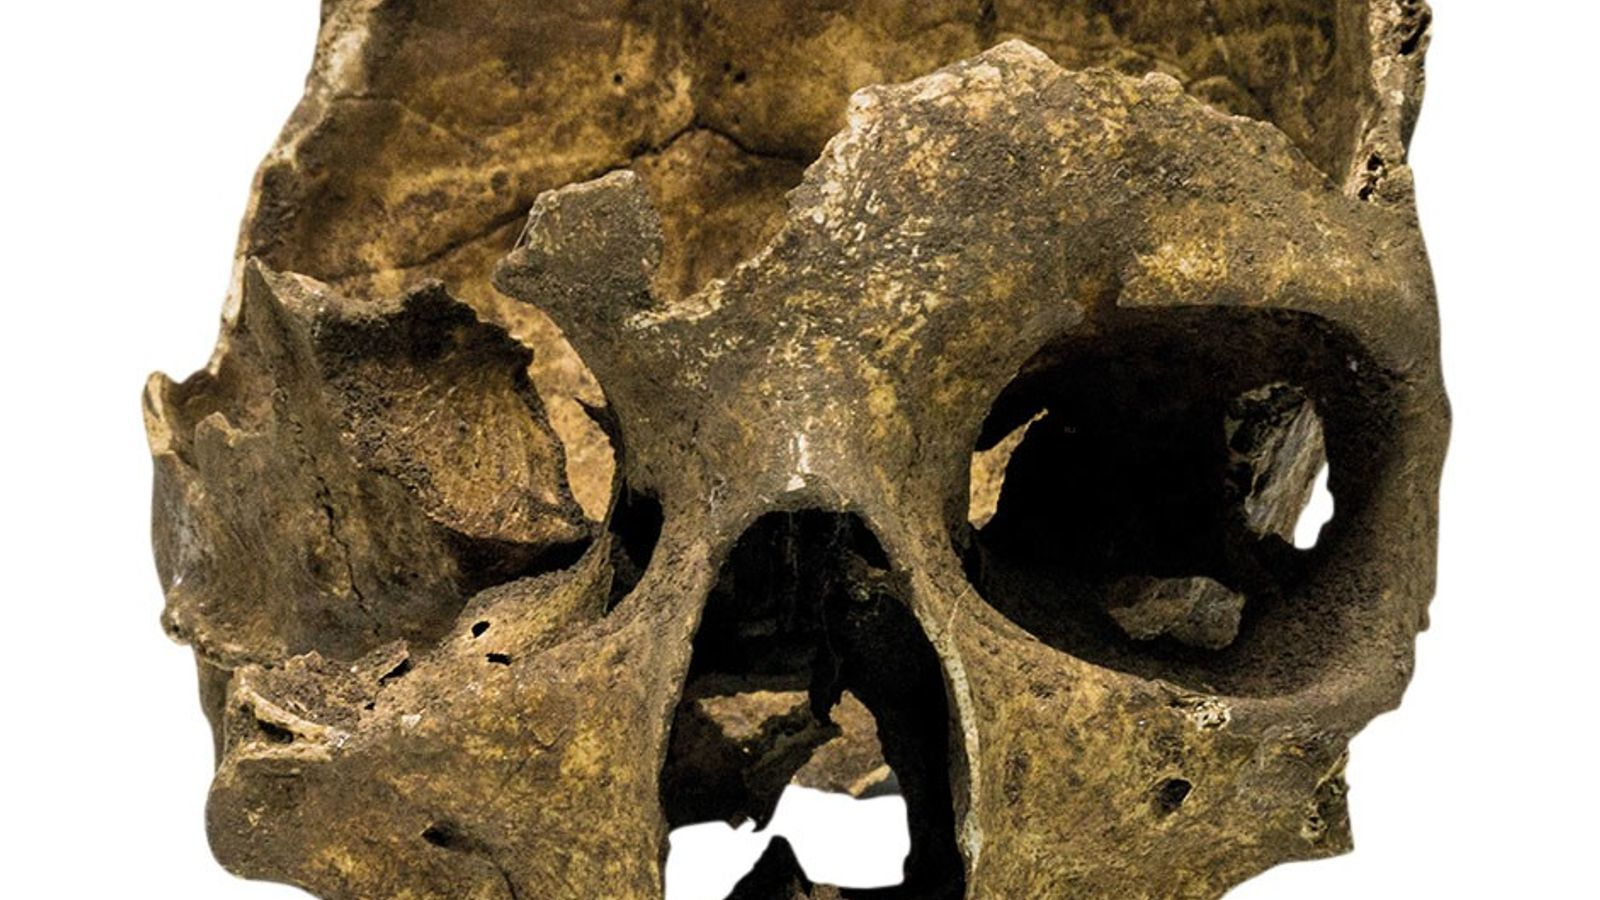 Human skull found in a cave at Europa Point, Gibraltar, in 1996.